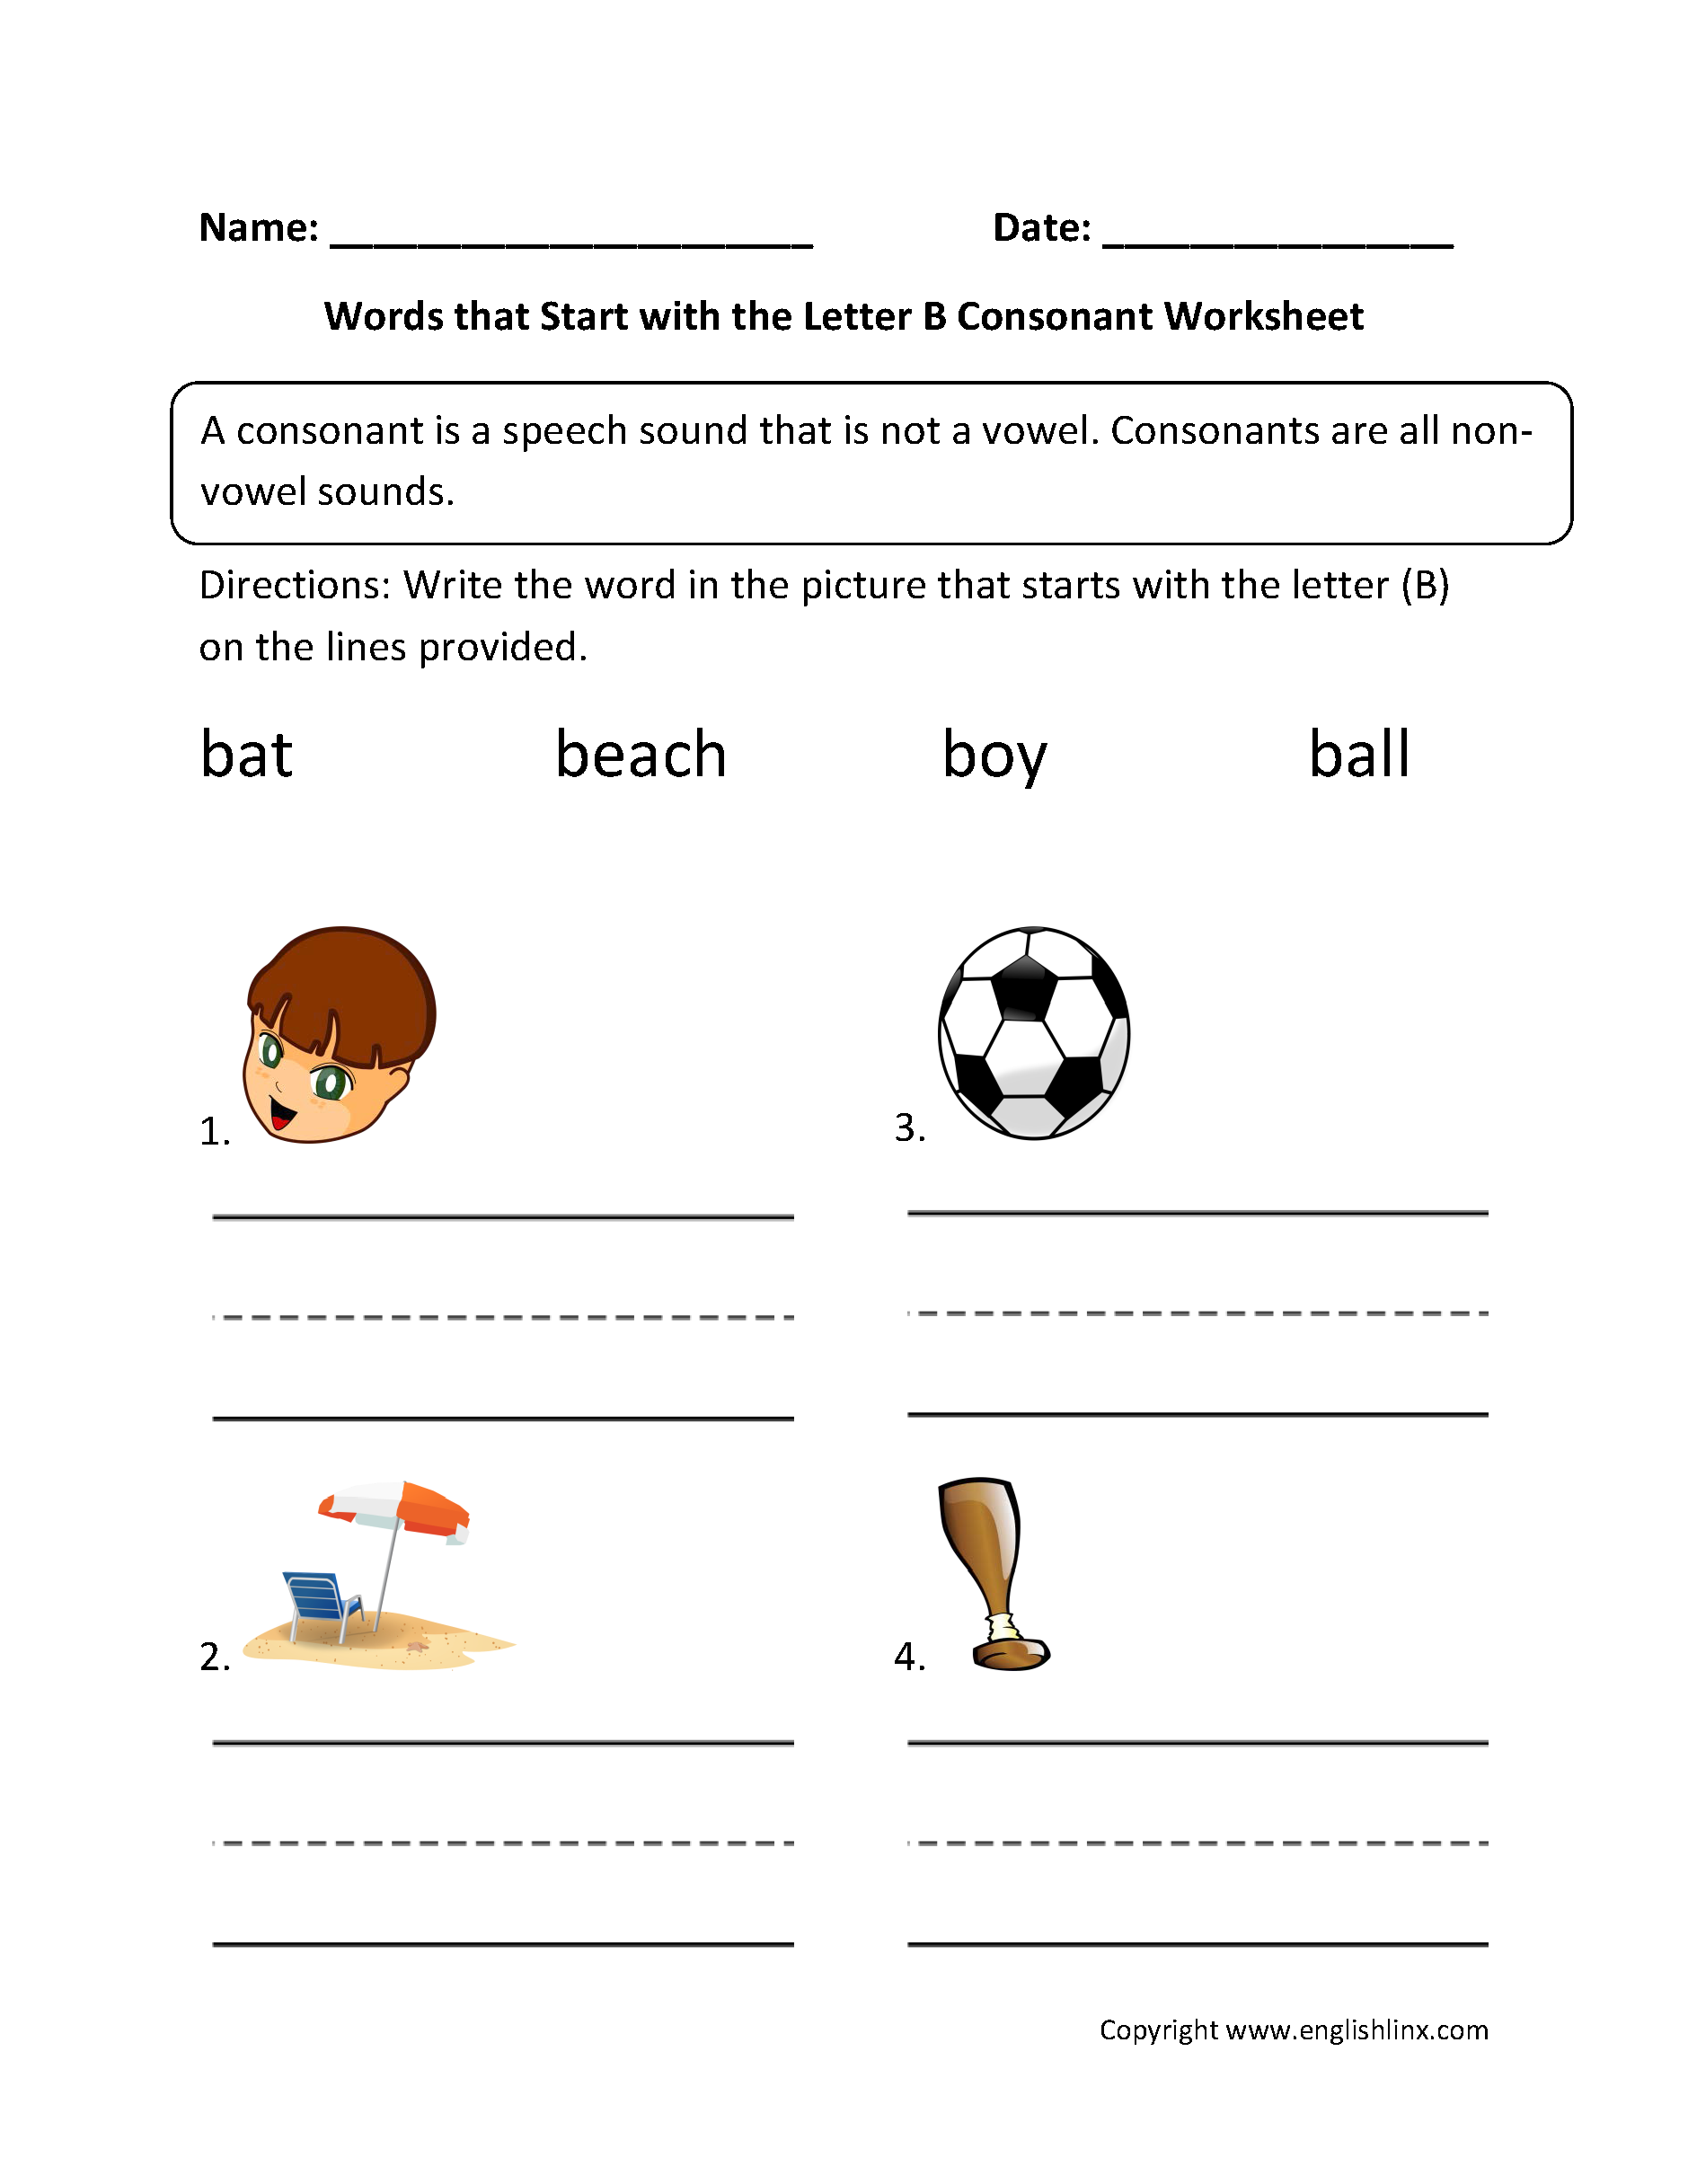 Words Start Letter B Consonant Worksheets  EnglishlinxCom Board